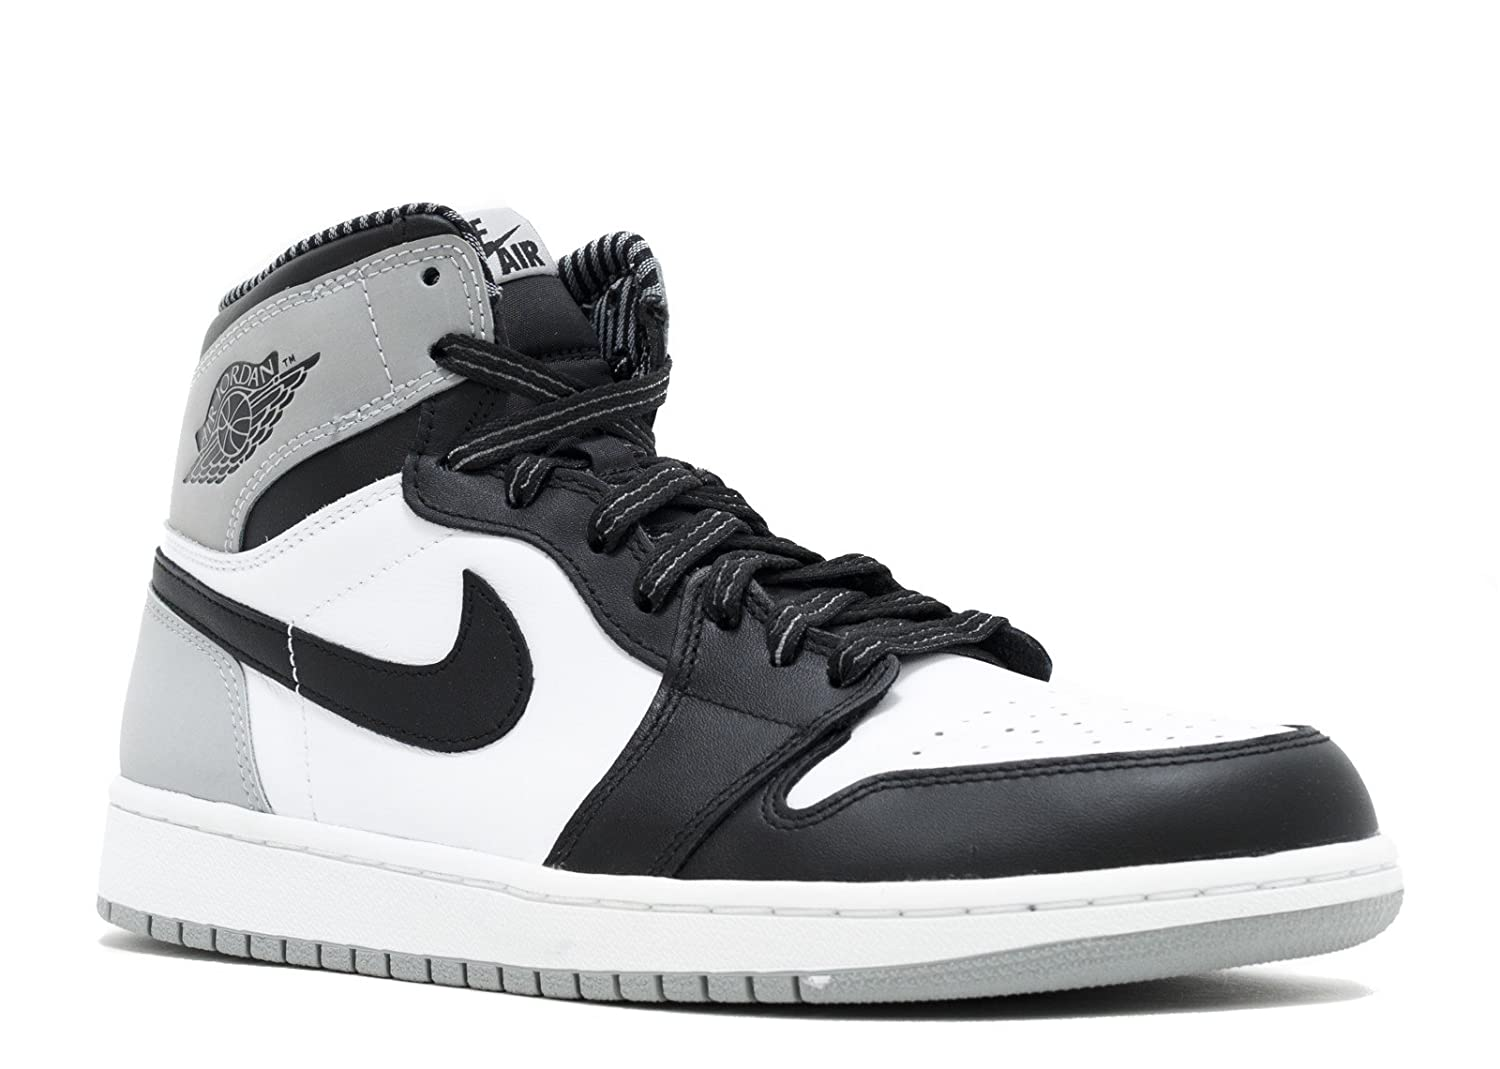 sports shoes 09d38 fb168 Amazon.com   Nike Mens Air Jordan 1 Retro High OG Barons Leather Basketball  Shoes   Basketball